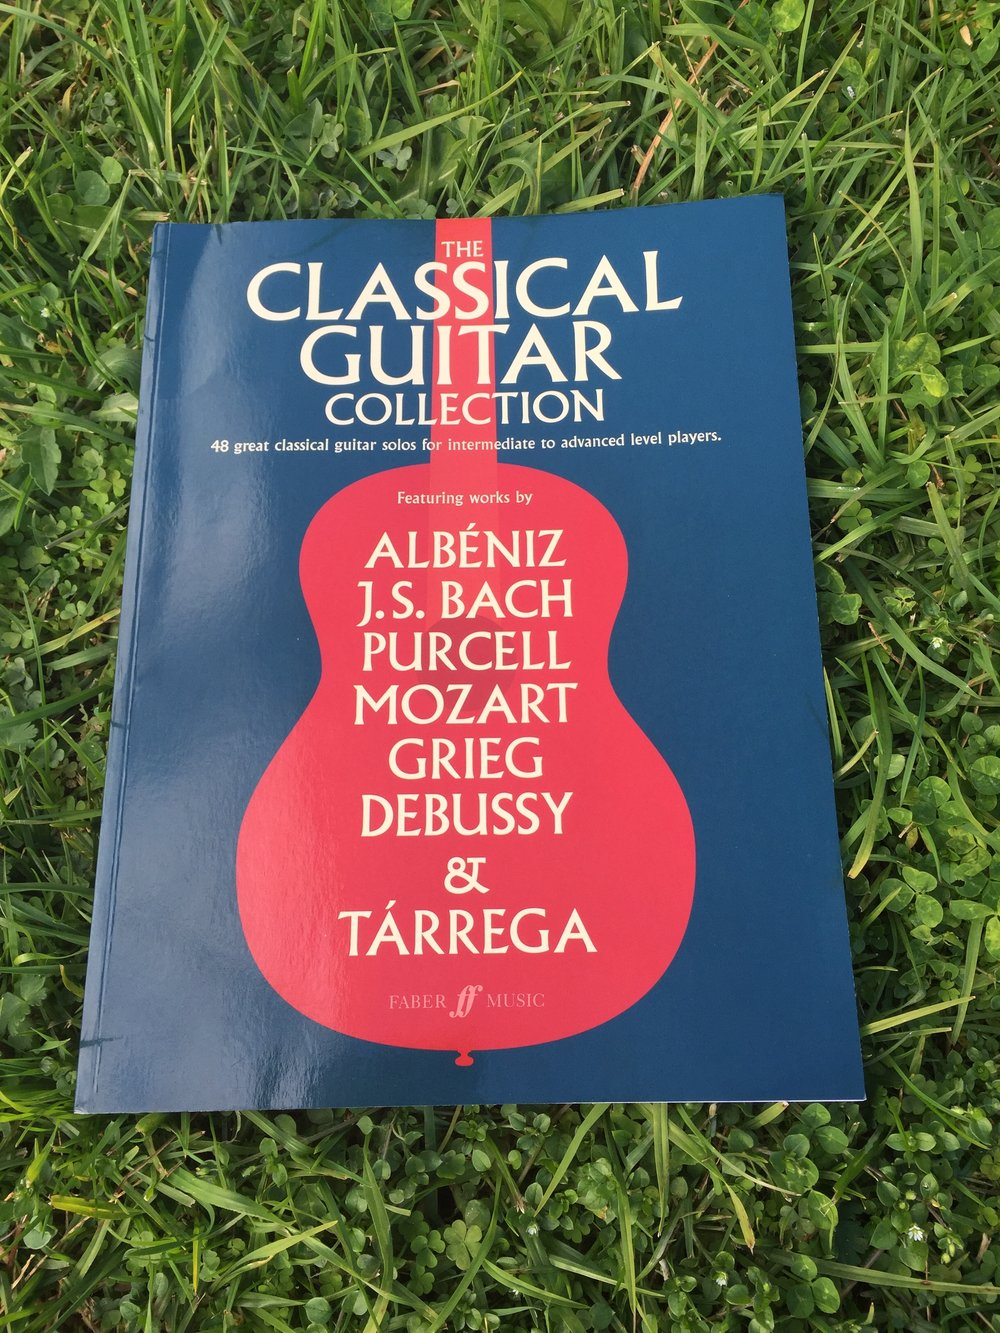 An excellent book for aspiring guitar players looking to expand their repertoires.